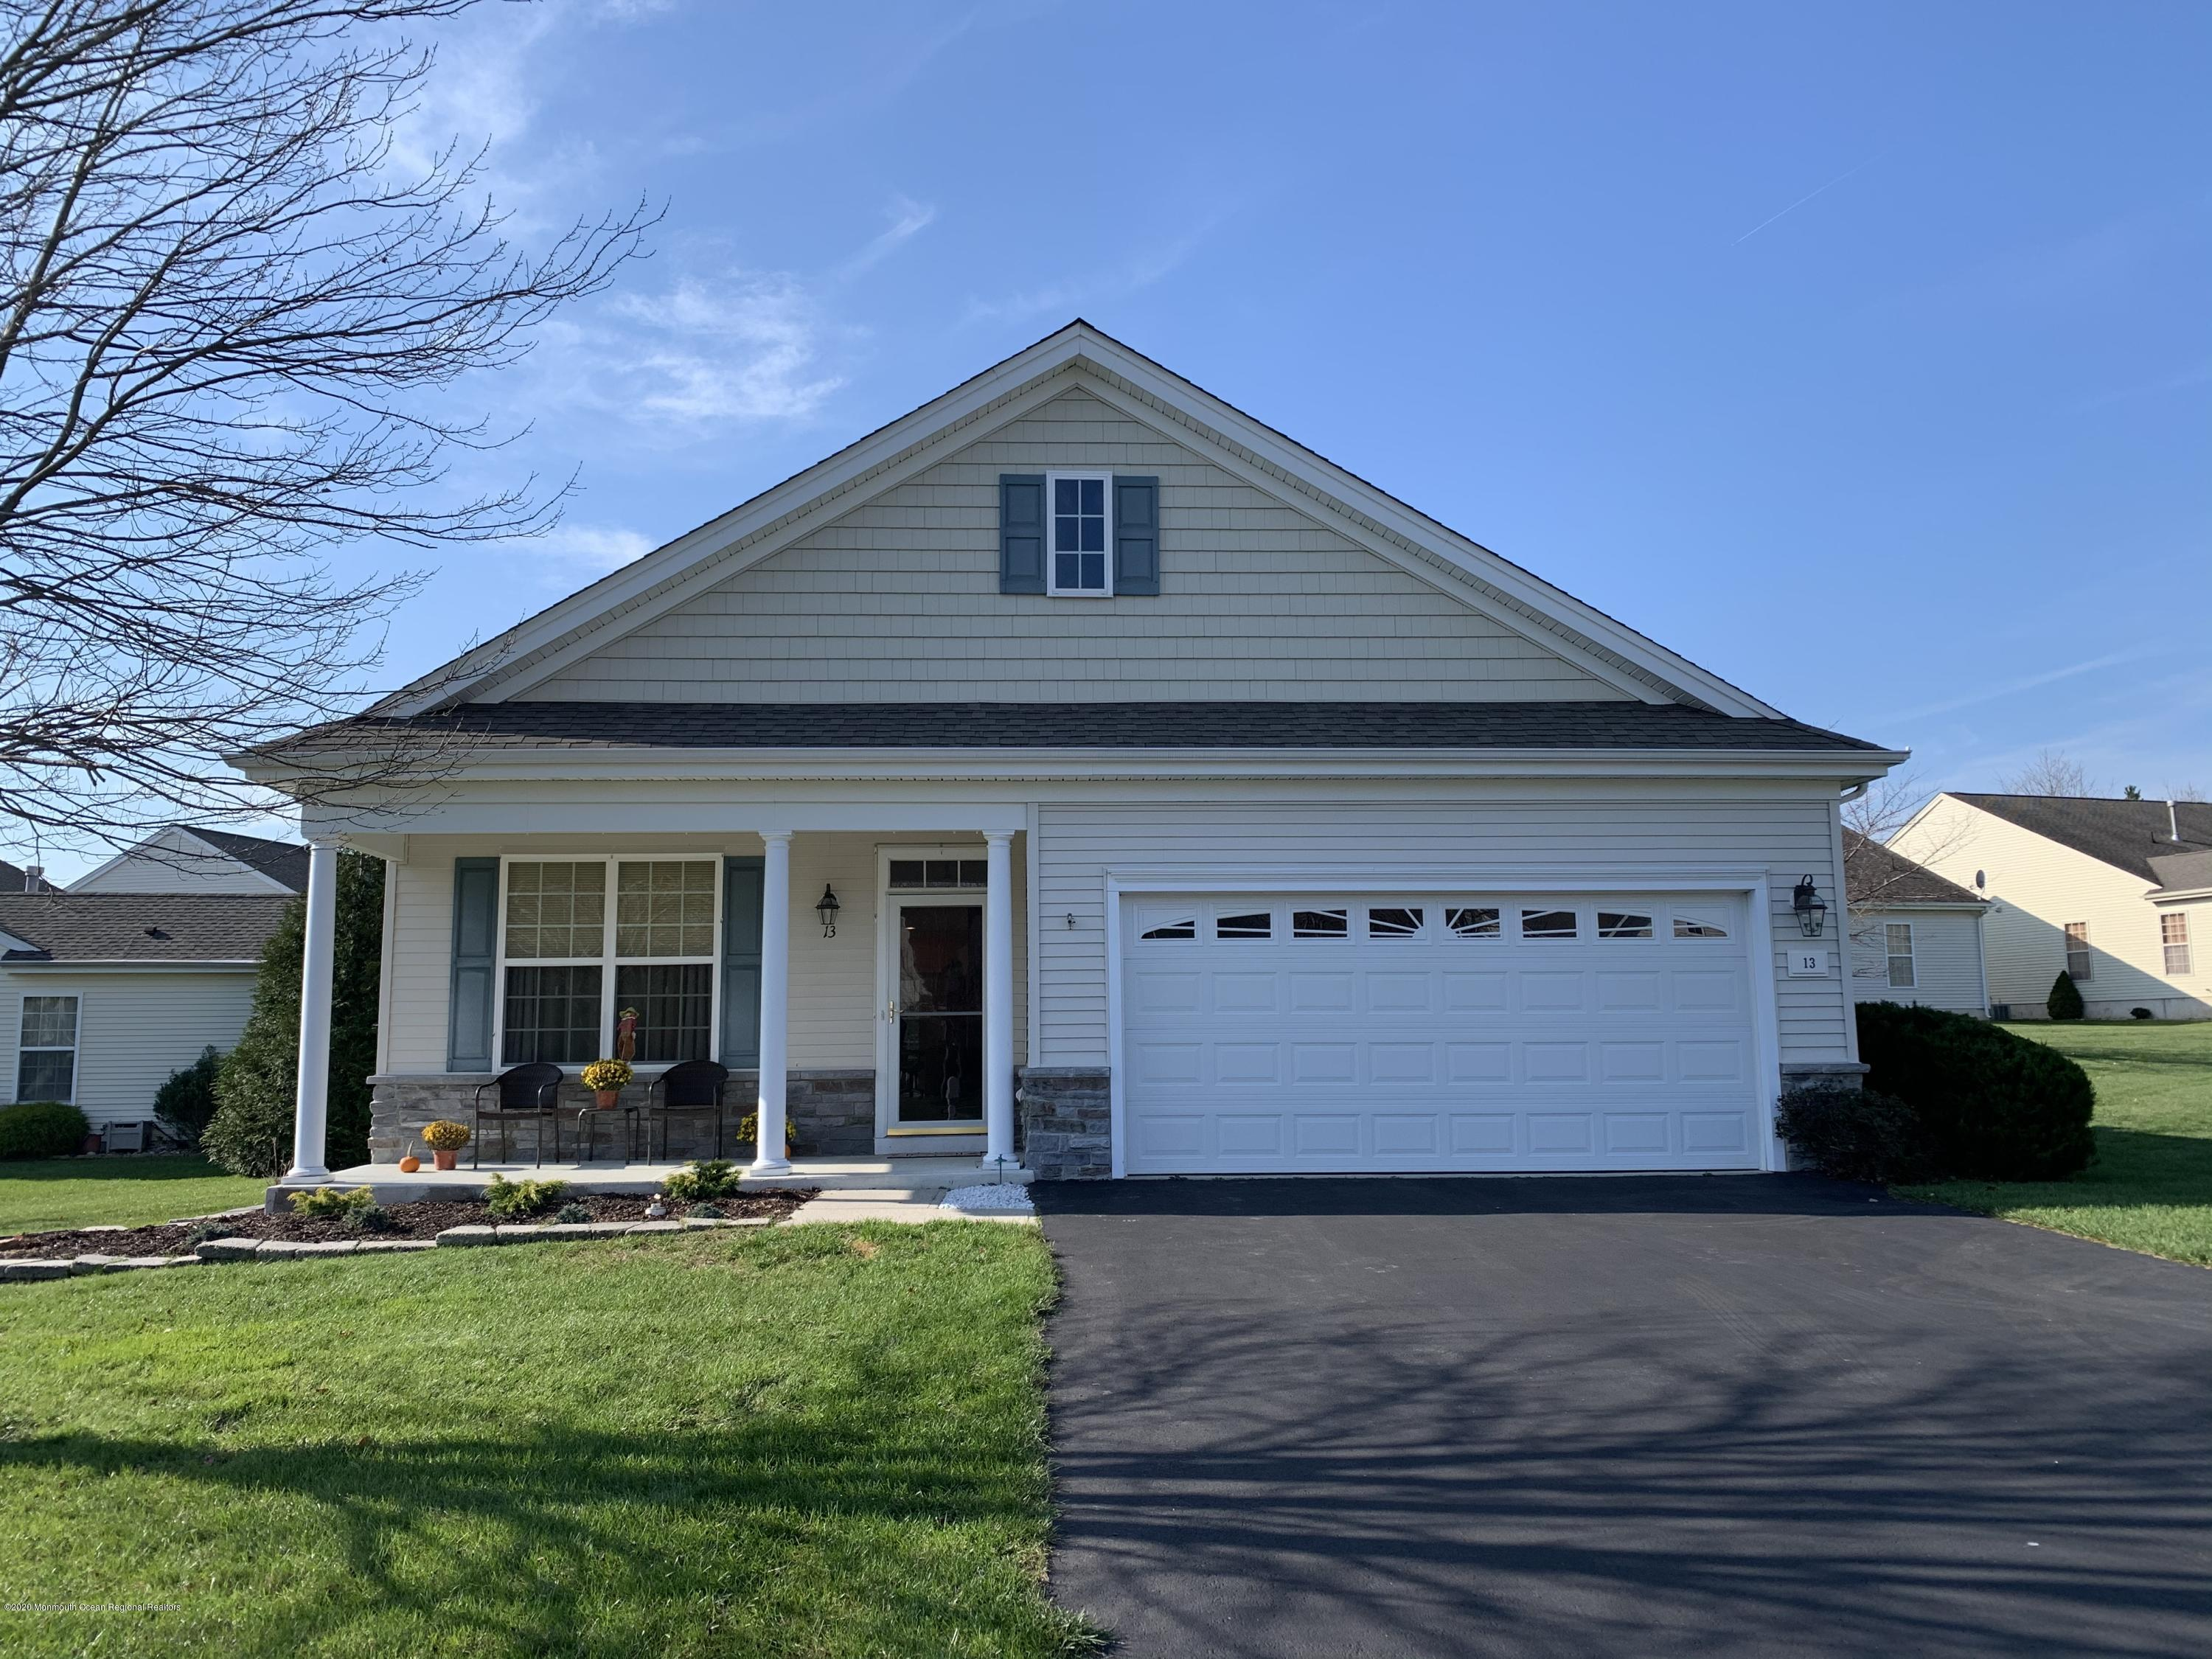 Well-maintained Barnegat model, 2BR/2BA with Enclosed Porch on wider, premium lot in a cul-de-sac, easy walk to Breakers Spa Center. Kitchen is open to Family Room, granite countertop, newer dishwasher, upgraded vinyl windows, MBR w/Walk-in Closet. Master Bath w/ Stall Shower.  Newer water heater (2015), newer carpets. Located in Heritage Point with Two Clubhouses In & Outdoor Pools, Tennis, Bocce, hot tub, saunas, fitness center, putting green, chipping green, horseshoe pits.